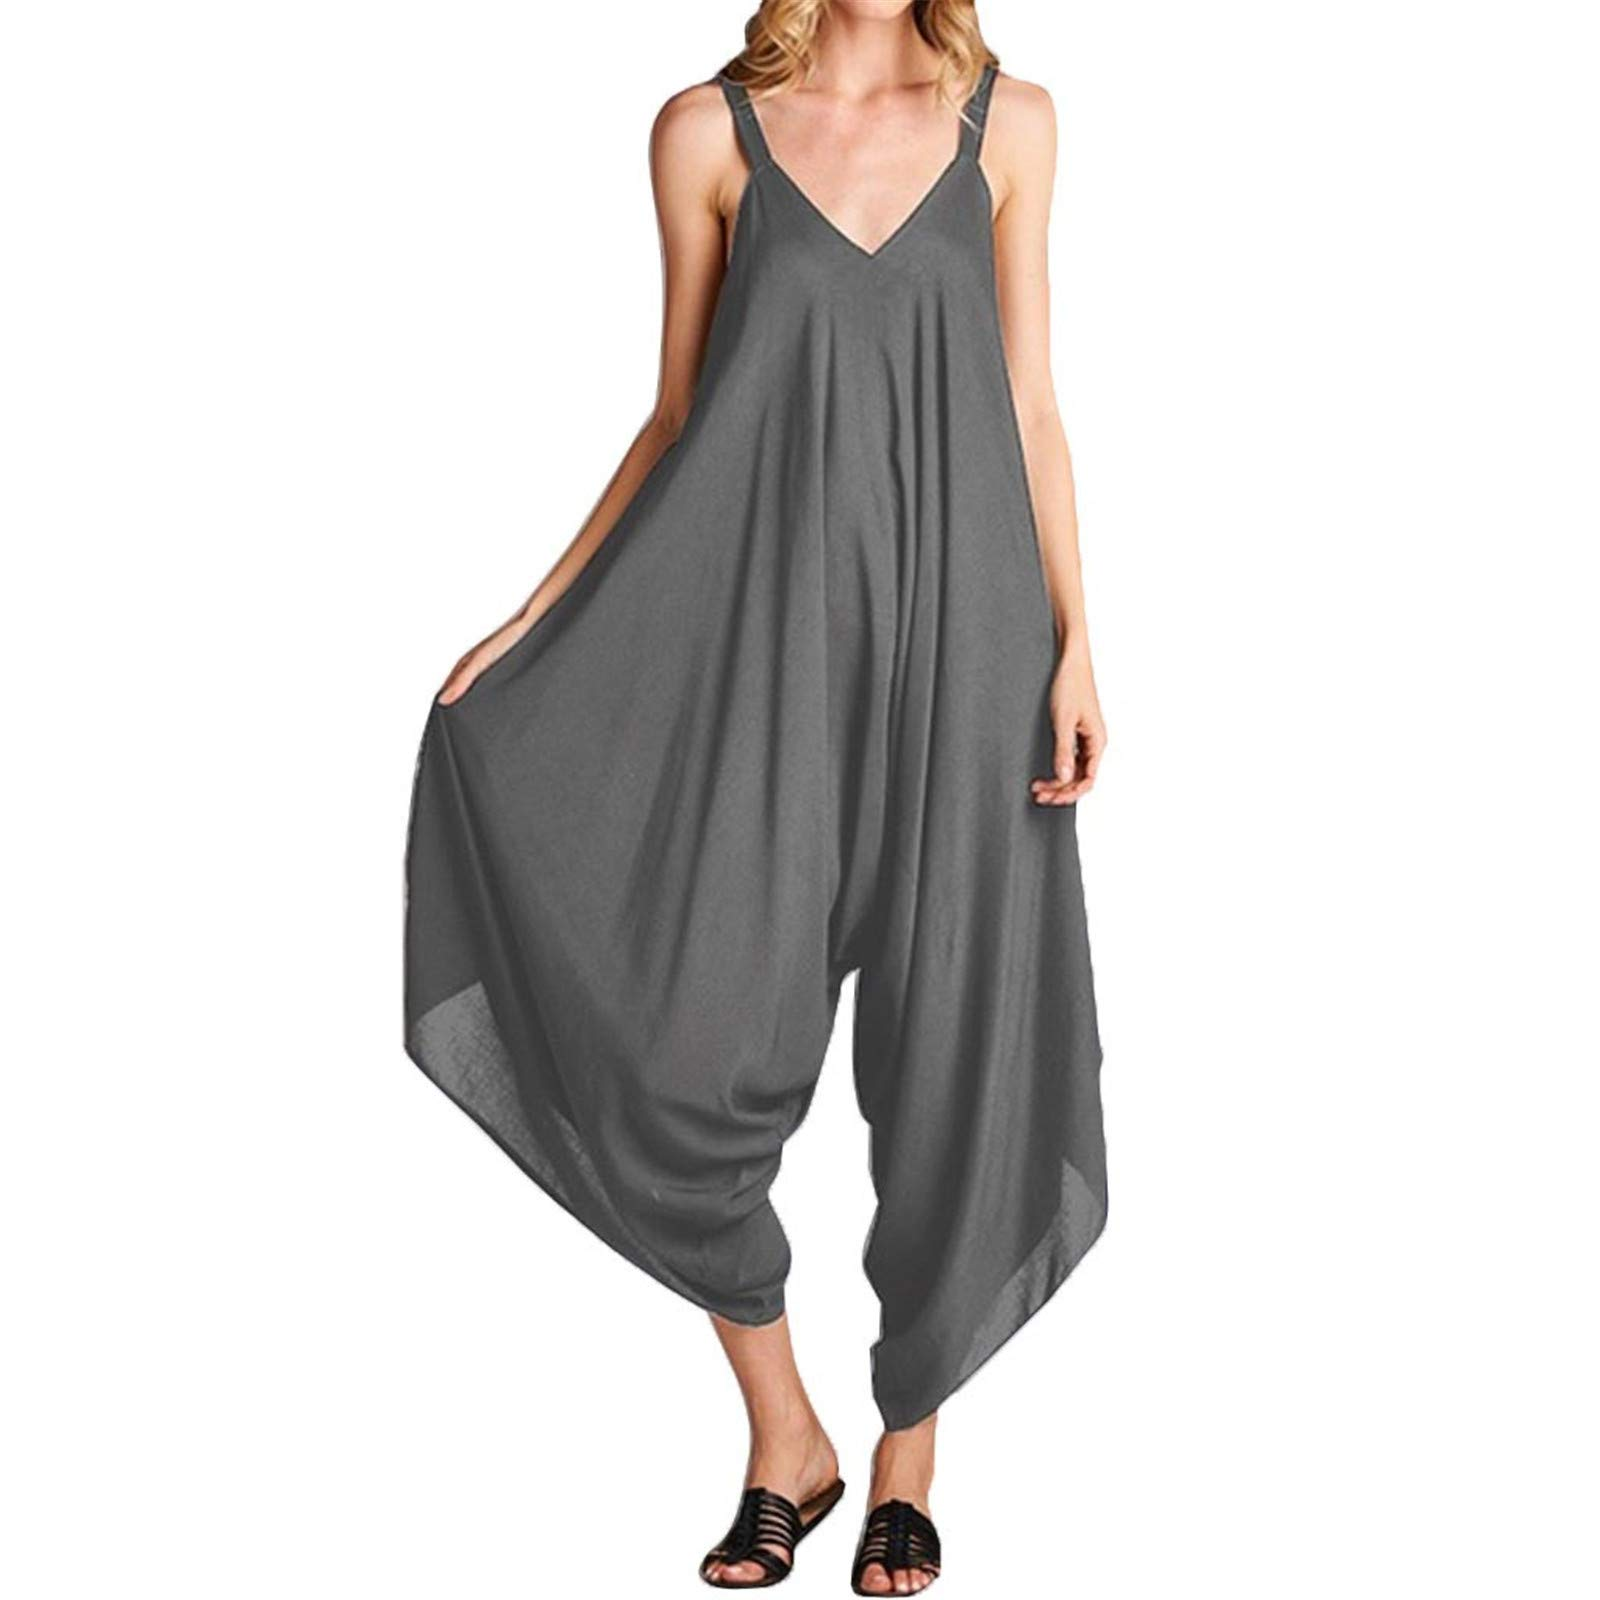 Thenxin Loose Romper for Women Sling V-Neck Wide Leg Jumpsuit Solid Color Comfy Outfit Playsuit (Gray,XL)